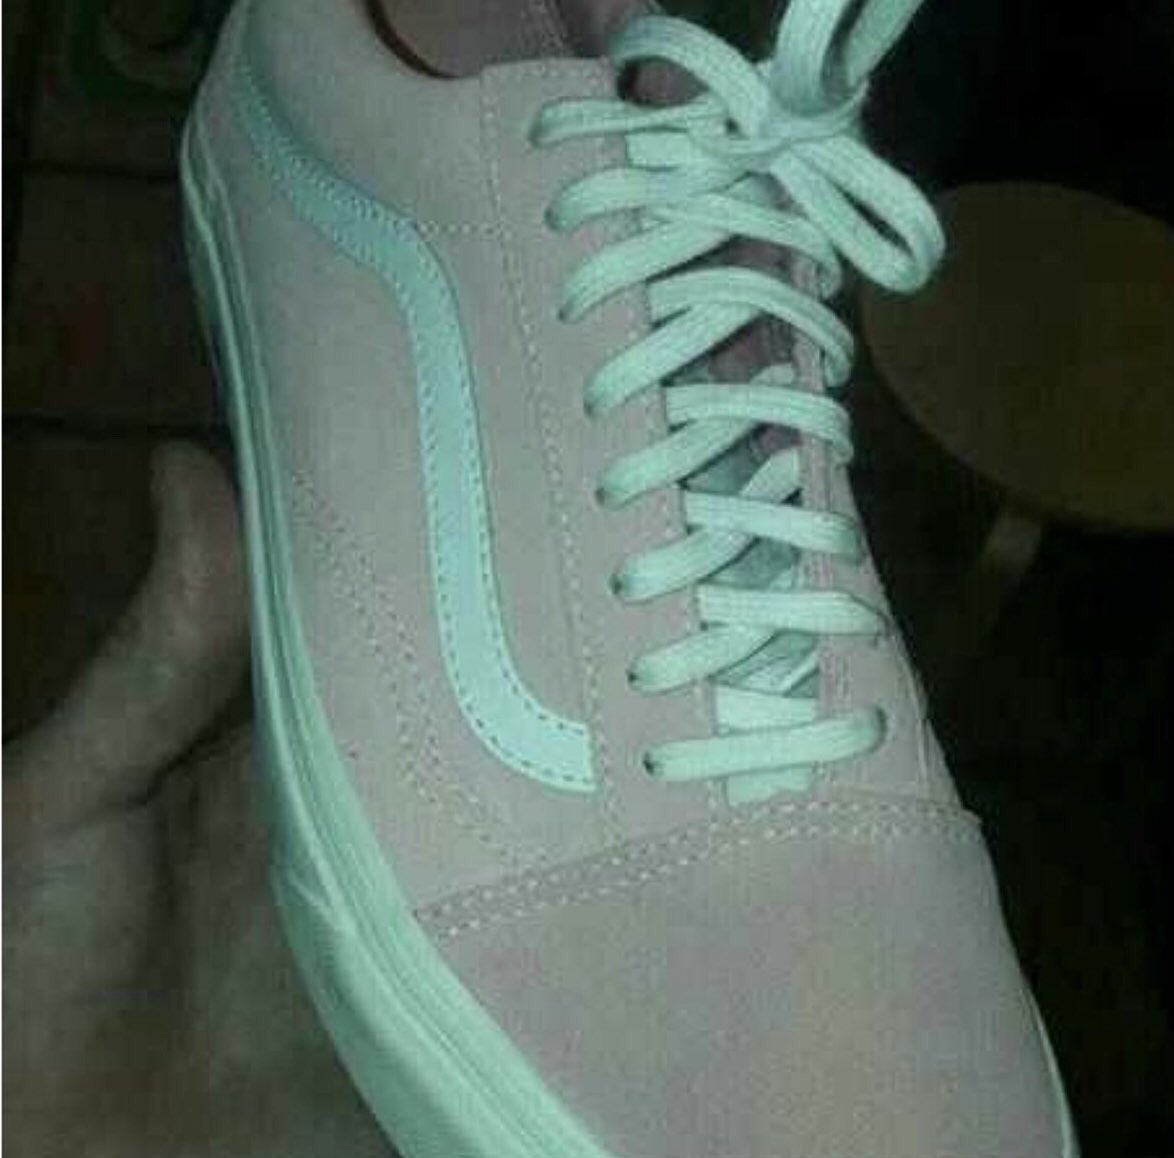 So I'm sure we've all seen this by now.. what do you see? Grey & Green or Pink & White? I've seen both!